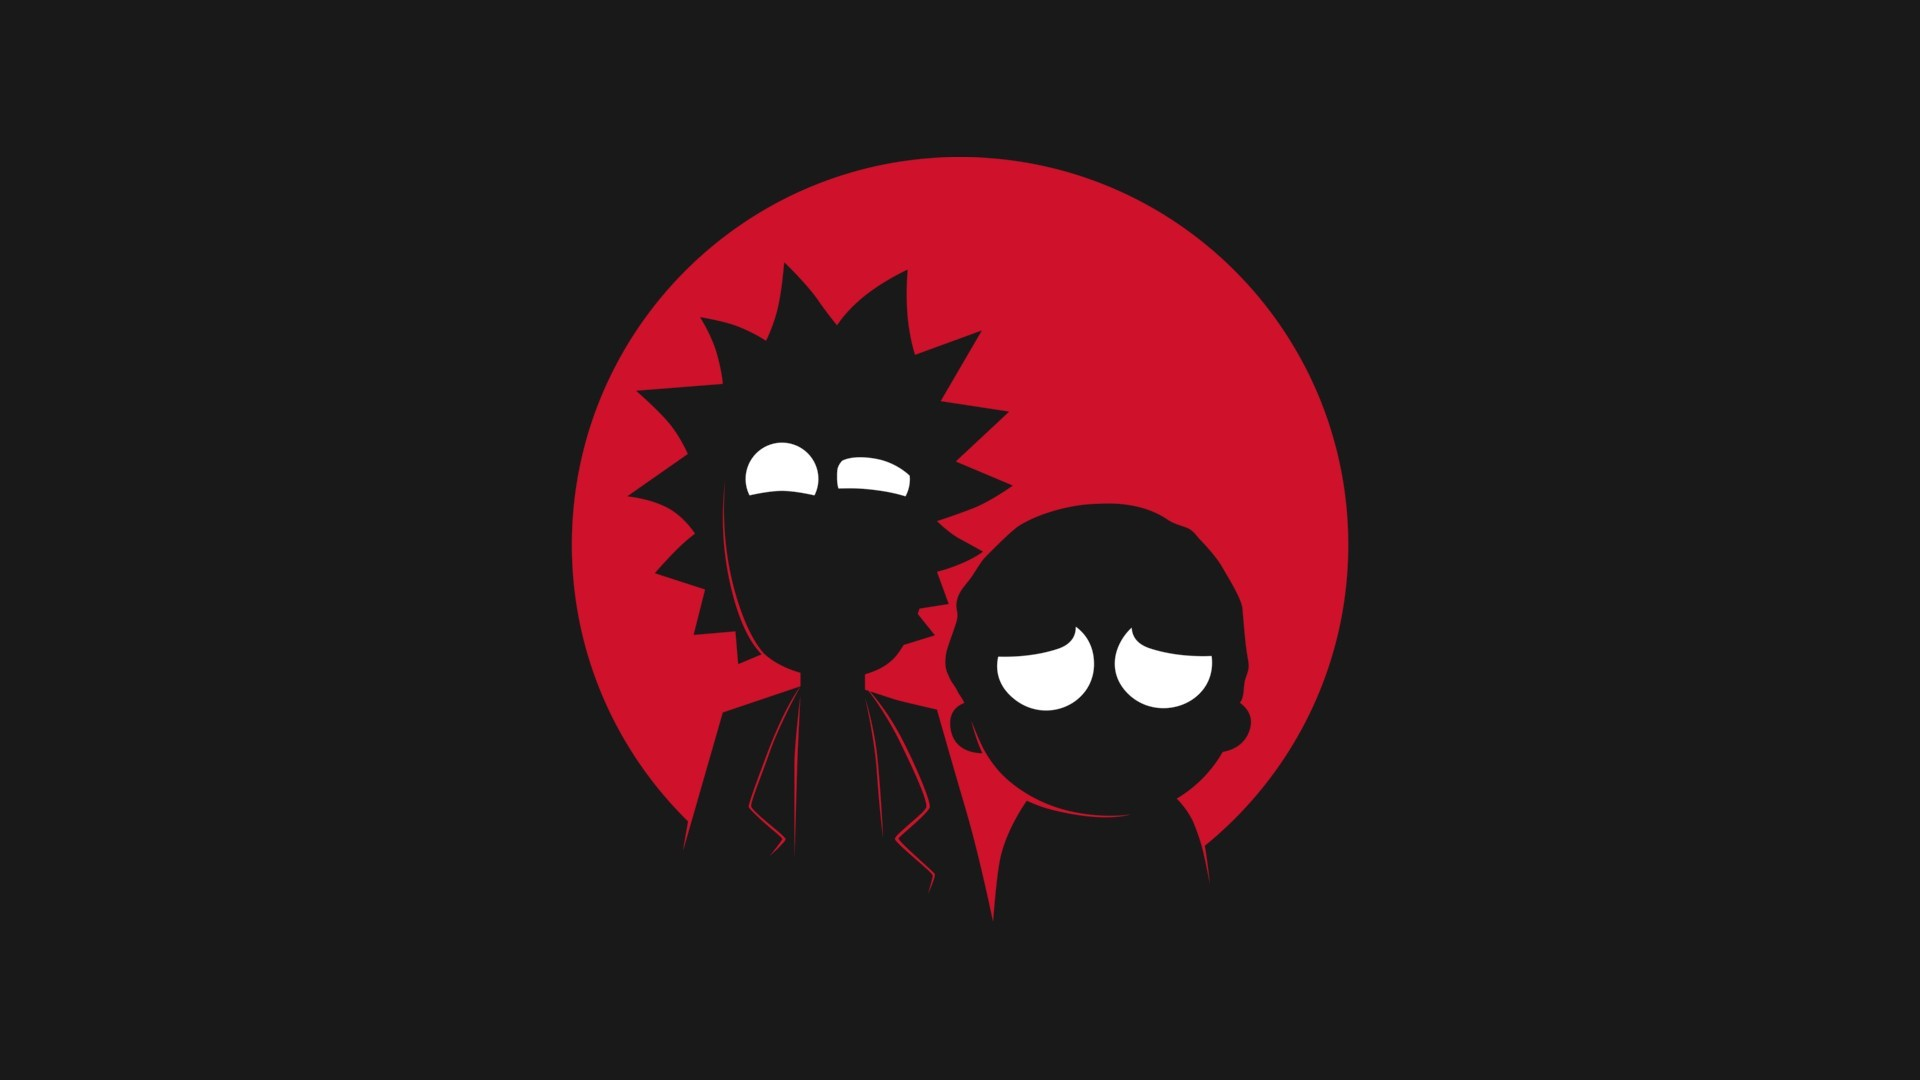 33  Rick and Morty wallpapers            Download free cool High Resolution     1920x1080 Rick and Morty